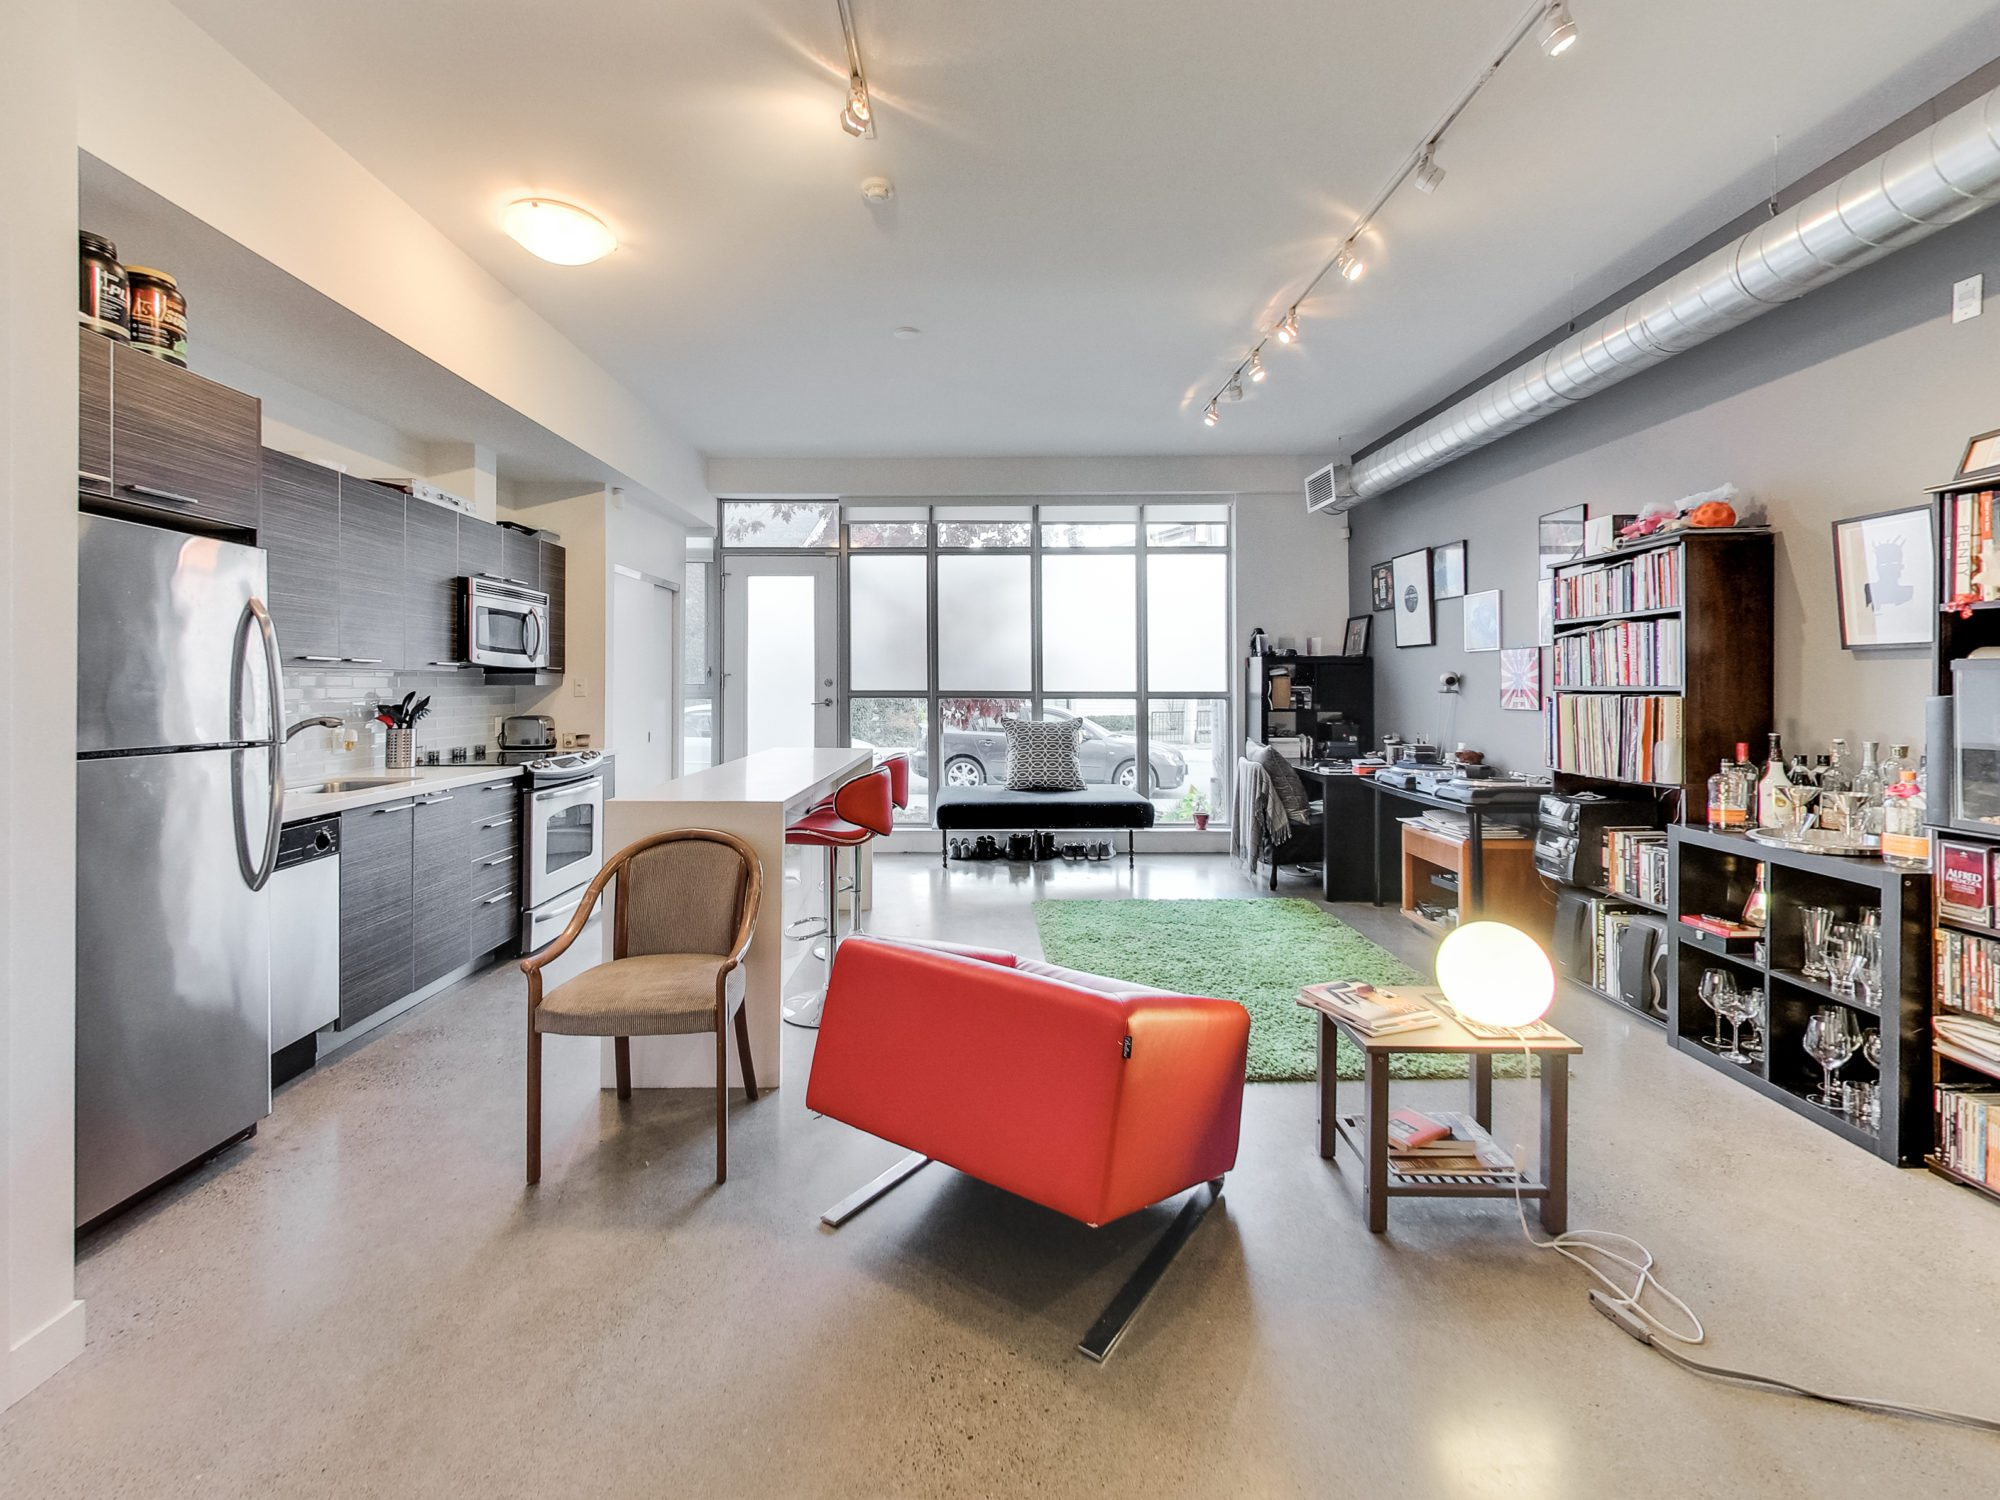 toronto-real-estate-condo-of-the-week-52-sumach-street-living-room-3